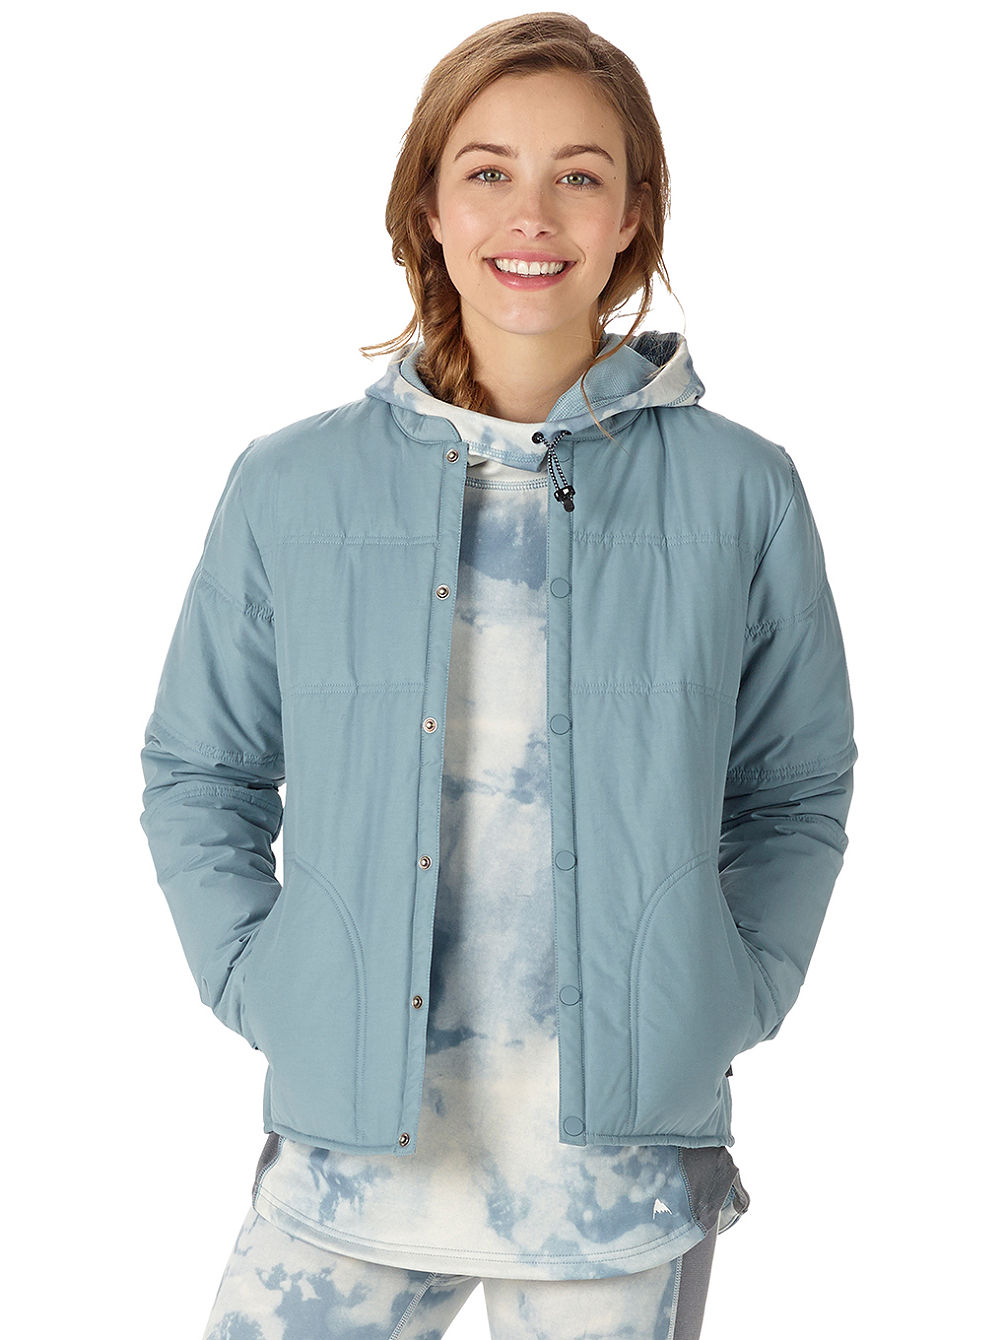 Arliss Insulator Jacket